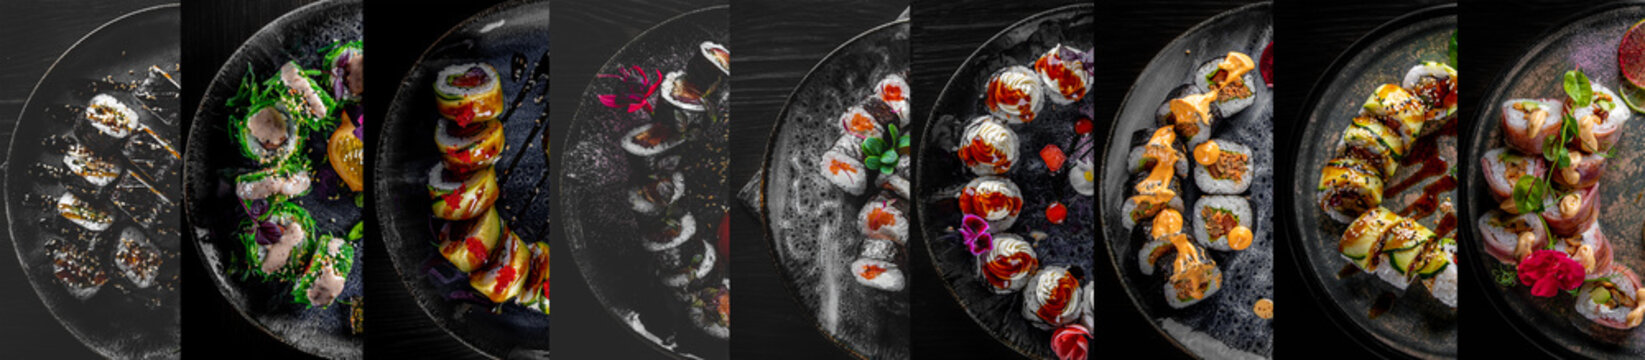 Banner for sushi roll menu. collage of different plates of sushi in assortment